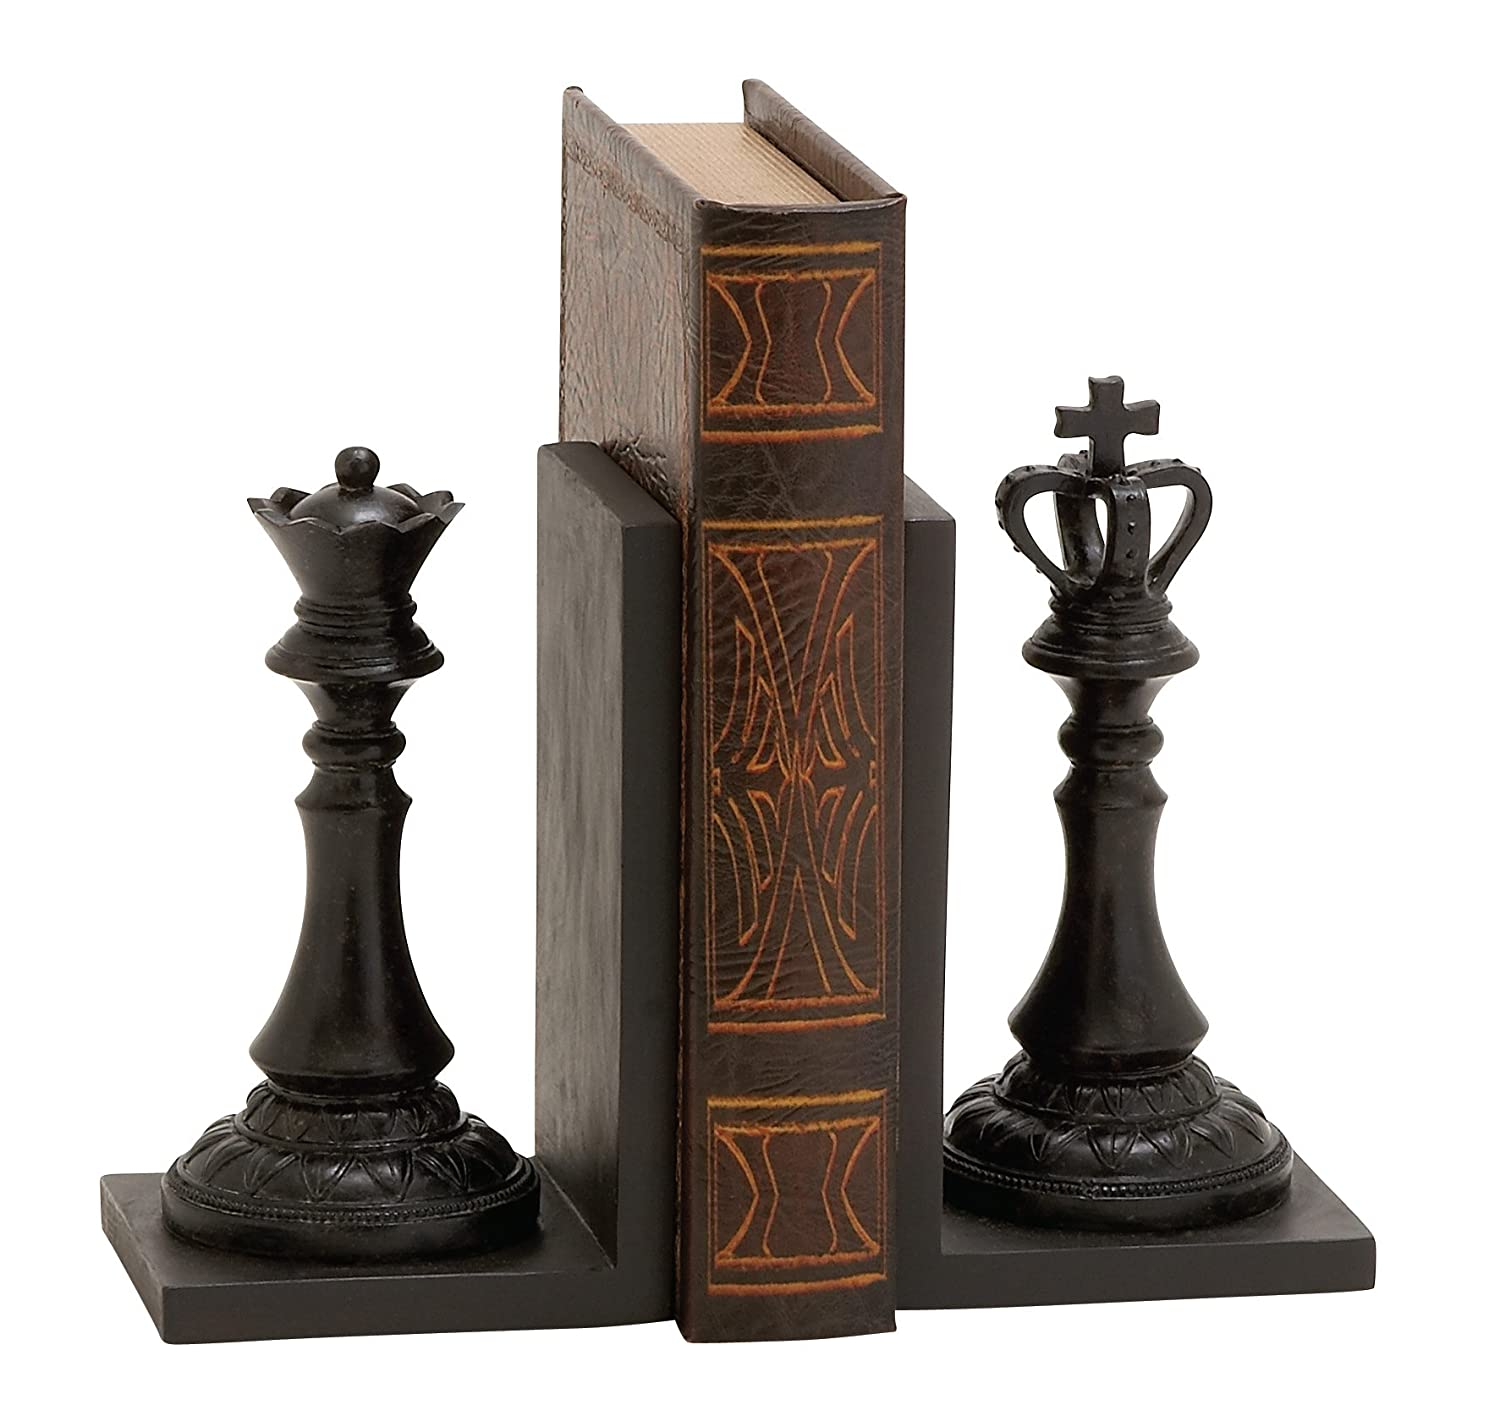 Chess Decor The Best Chess Gifts For Those Who Love The Game Gift Canyon